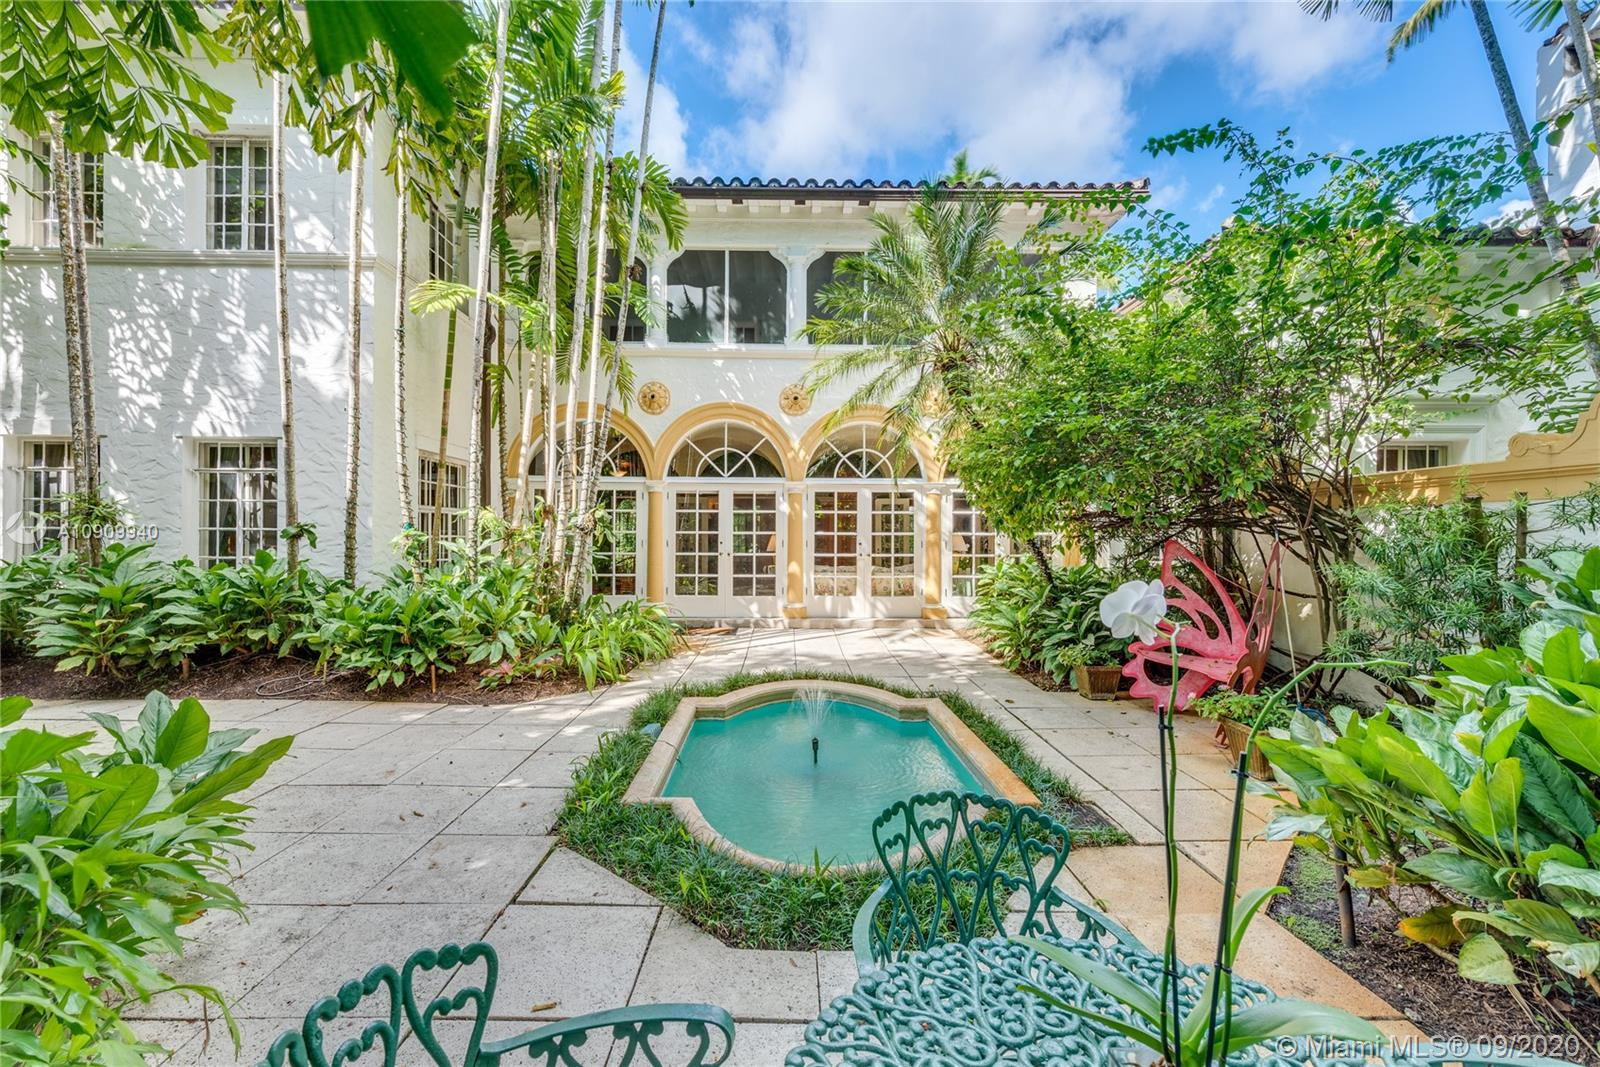 This classic 1926 Mediterranean villa is a crown jewel of Coral Gables. Nearly 5,000 adj. sq. ft. on a 17,500 sq. ft. lot. Steps from the Granada Golf Course. Enter to a large foyer with a sweeping staircase/marble floors. Entertain on a grand scale in a 45' ballroom with fireplace, or in the baronial LR with 12' high coffered ceilings. The 34' Garden room opens through French doors to the tranquil courtyard with fountain/patio (room for a pool). Formal DR next to a huge kitchen/breakfast rm. Half bath tucked under the stairs. 2-car garage. Upstairs Master Suite has a fireplace, sitting room, walk-in closet. Also, find 4 spacious bdrms/2 baths, plus screened-in porch overlooking tropical landscaping. This Merrick-era Mansion is unique and exquisite in every detail. Well priced.